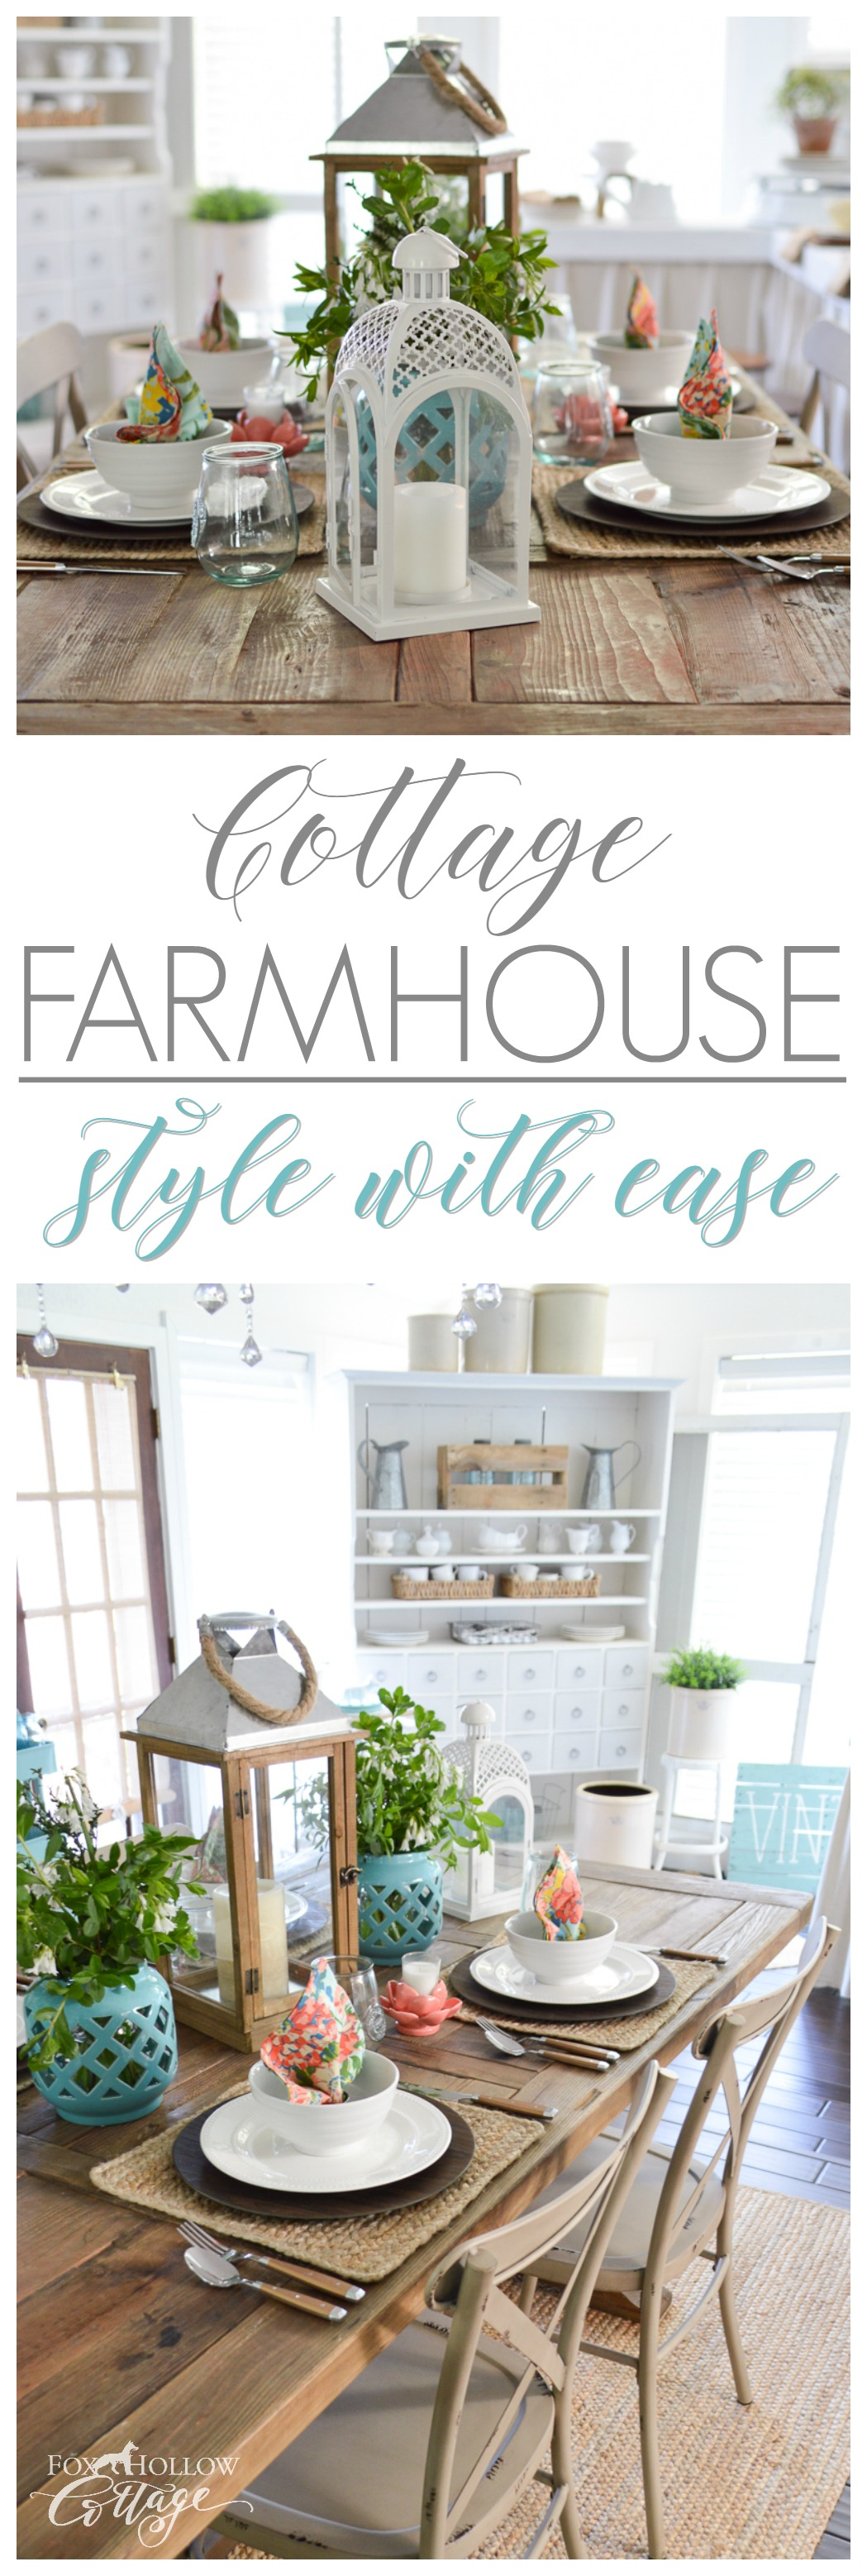 Easy, relaxed cottage farmhouse style (on a budget!) - Farm table decorating ideas